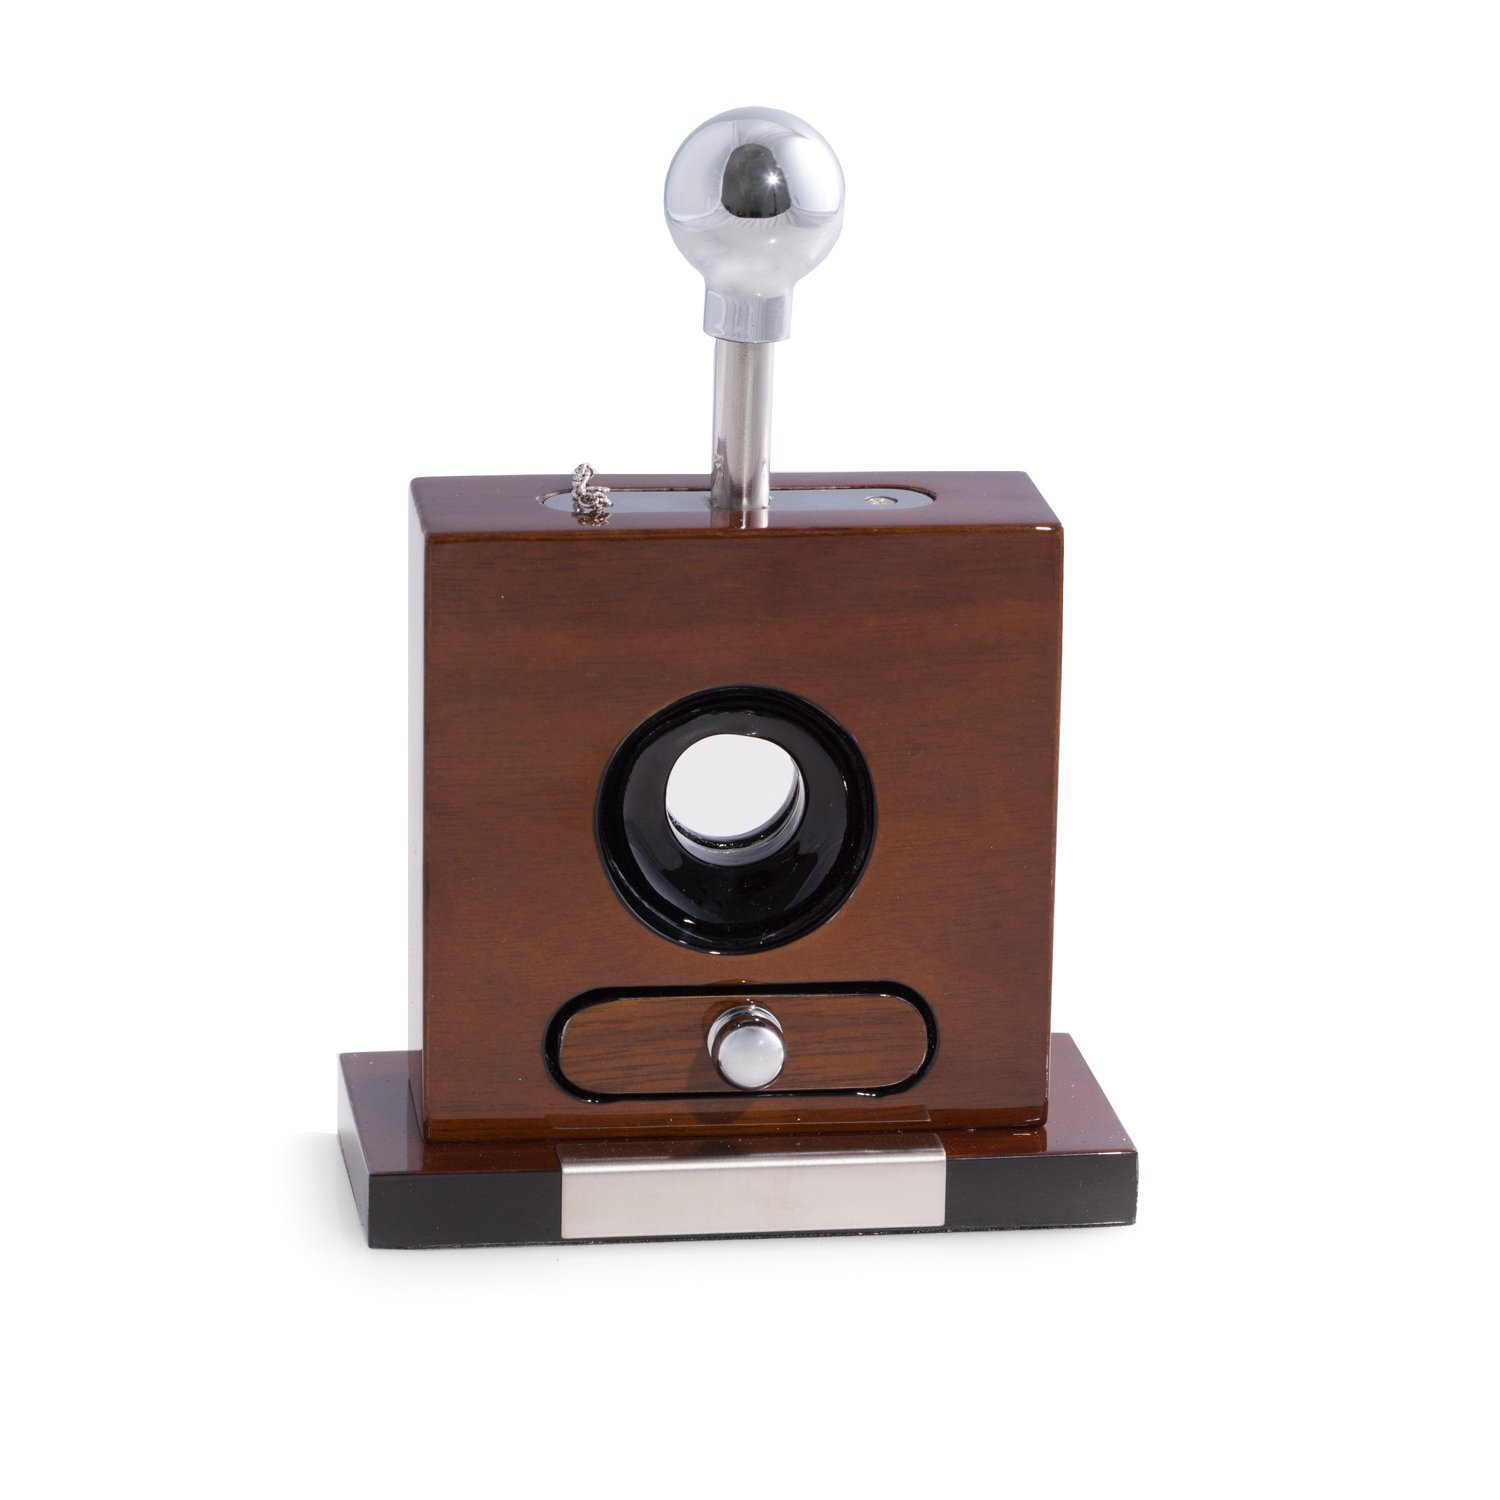 Bey-Berk AJ-C115 Lacquered ''Walnut'' Wood and Stainless Steel Table Top Guillotine Cigar Cutter with Drawer for Cuttings, Walnut